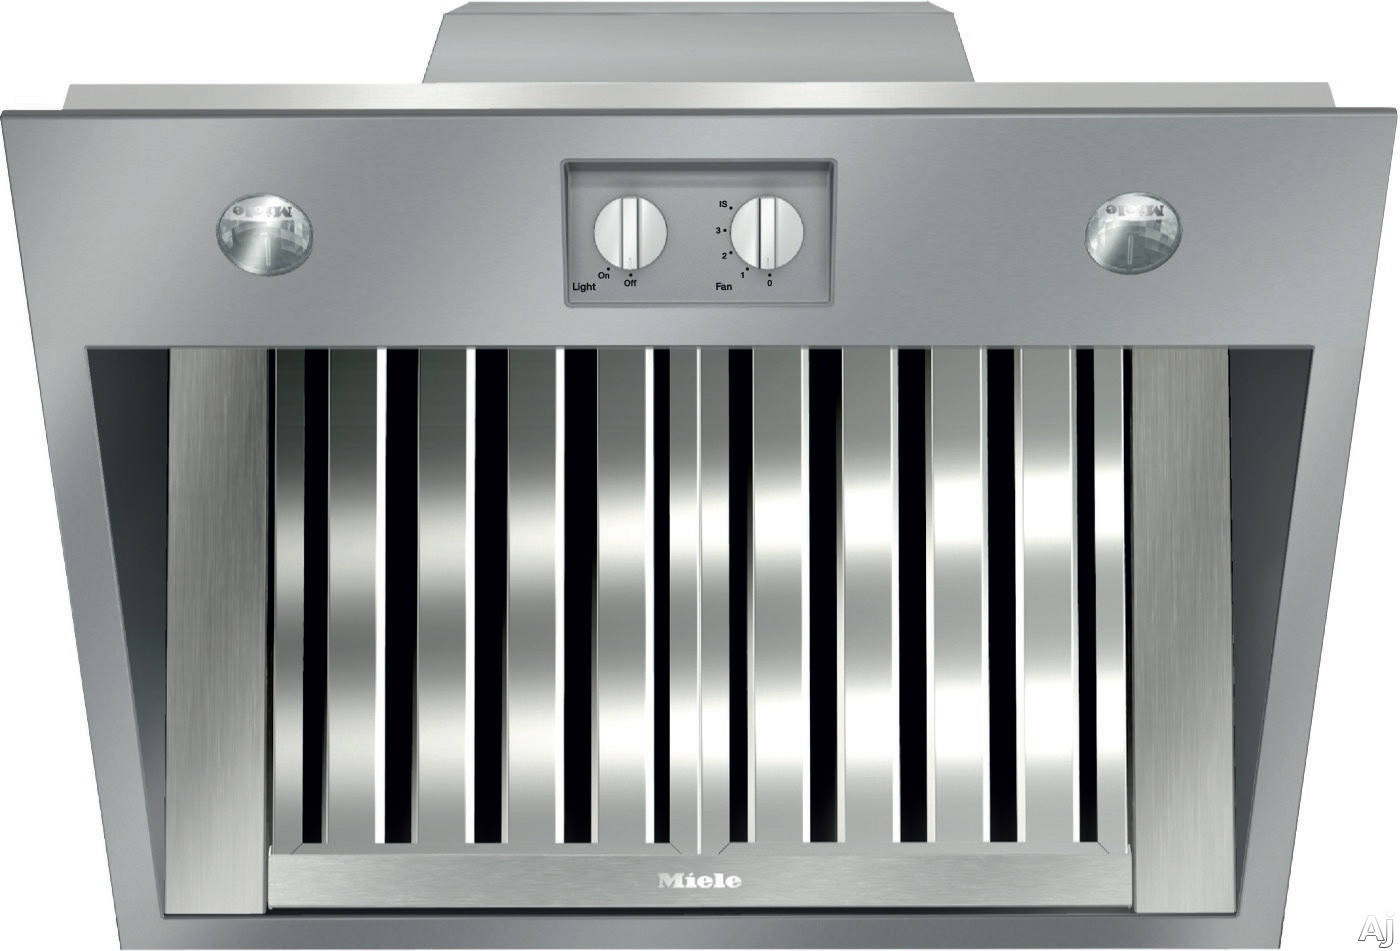 Compare Range Hood Replacement Filter Prices An Doulton